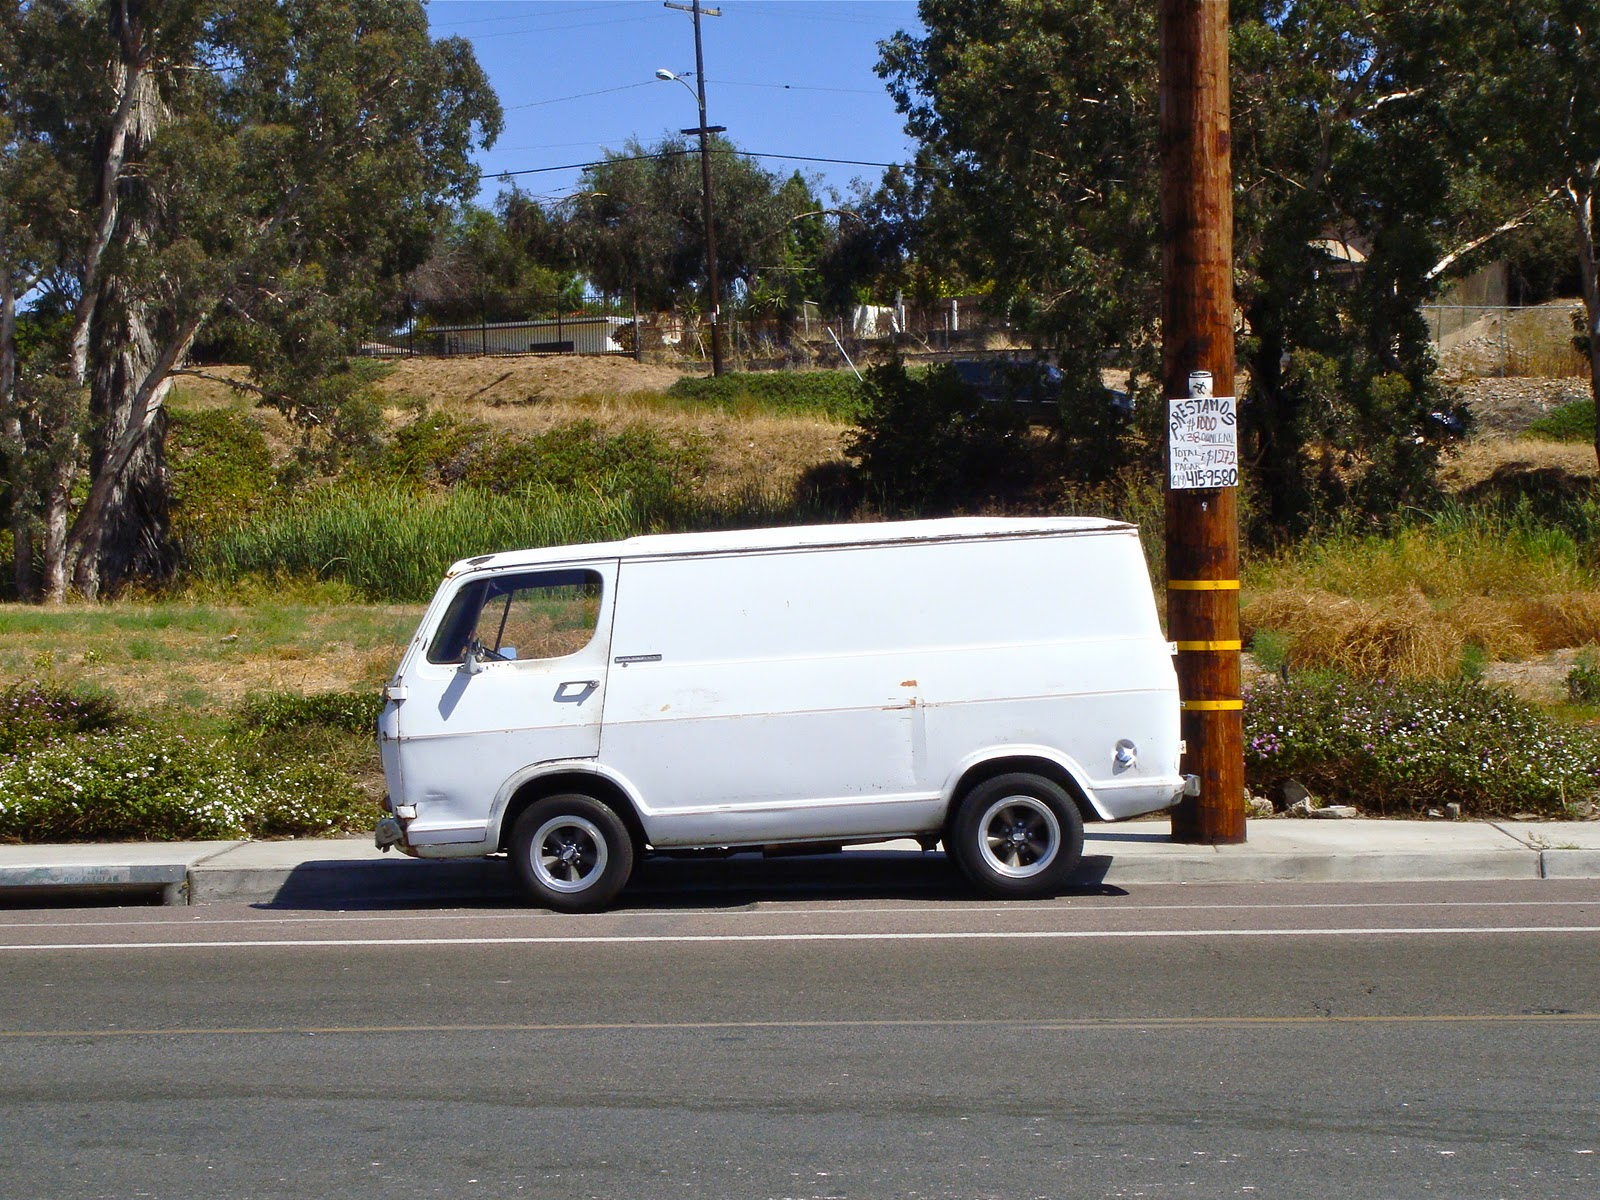 Craigslist Boulder Co Cars  Trucks By Owner >> 1964 Chevy Van Craigslist | Autos Post